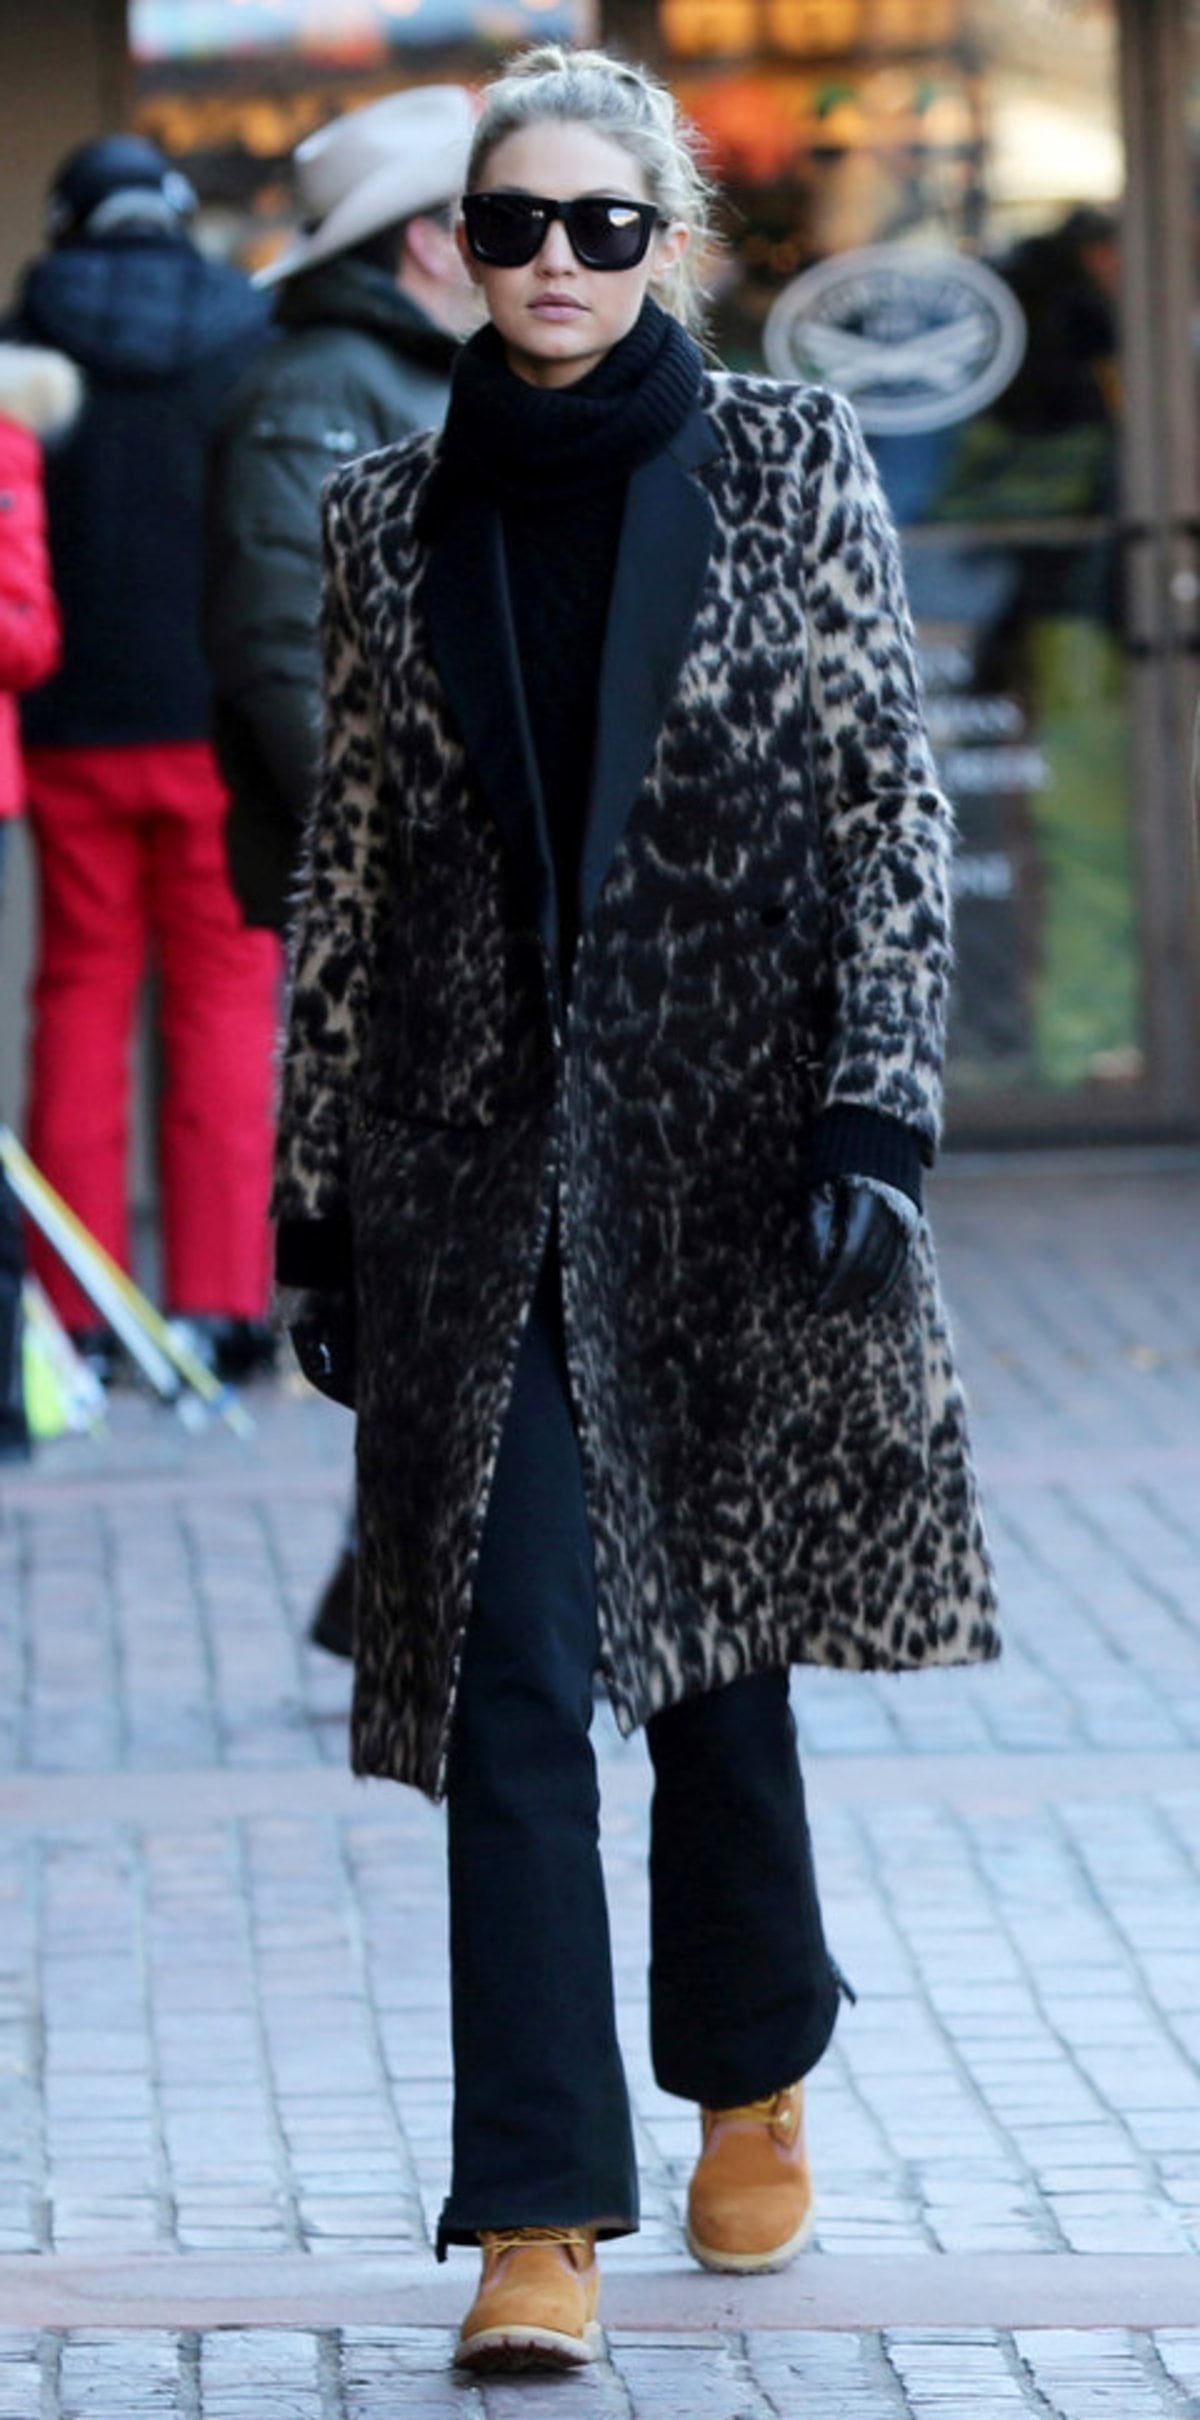 *EXCLUSIVE* Aspen, CO - *EXCLUSIVE* Aspen, CO - Gigi Hadid steps out in Aspen with her family. They head to catch the gondola ride up to dine at the top of the mountain. The model is wearing black on black with a leopard print satin lined jacket paired with classic Timberland boots. 12/27/2015 Copyright © 2014 AKM-GSI, Inc. To License These Photos, Please Contact : Maria Buda (917) 242-1505 mbuda@akmgsi.com or Steve Ginsburg (310) 505-8447 (323) 423-9397 steve@akmgsi.com sales@akmgsi.com